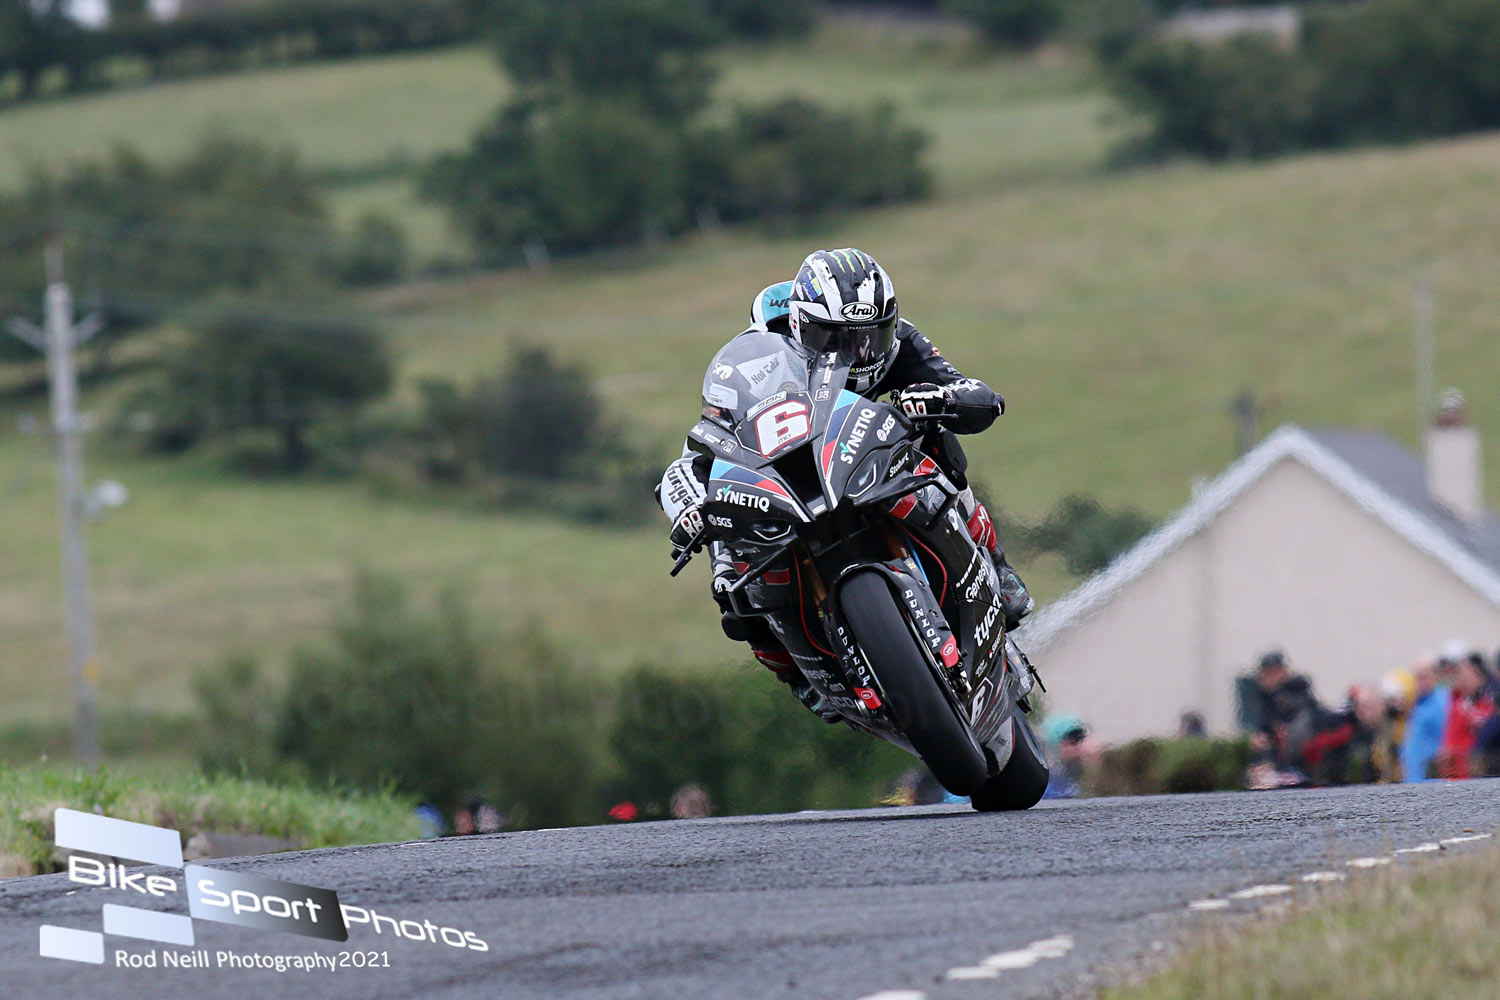 Armoy: Record Breaking Dunlop Gives M1000RR BMW First Irish Road Race Win